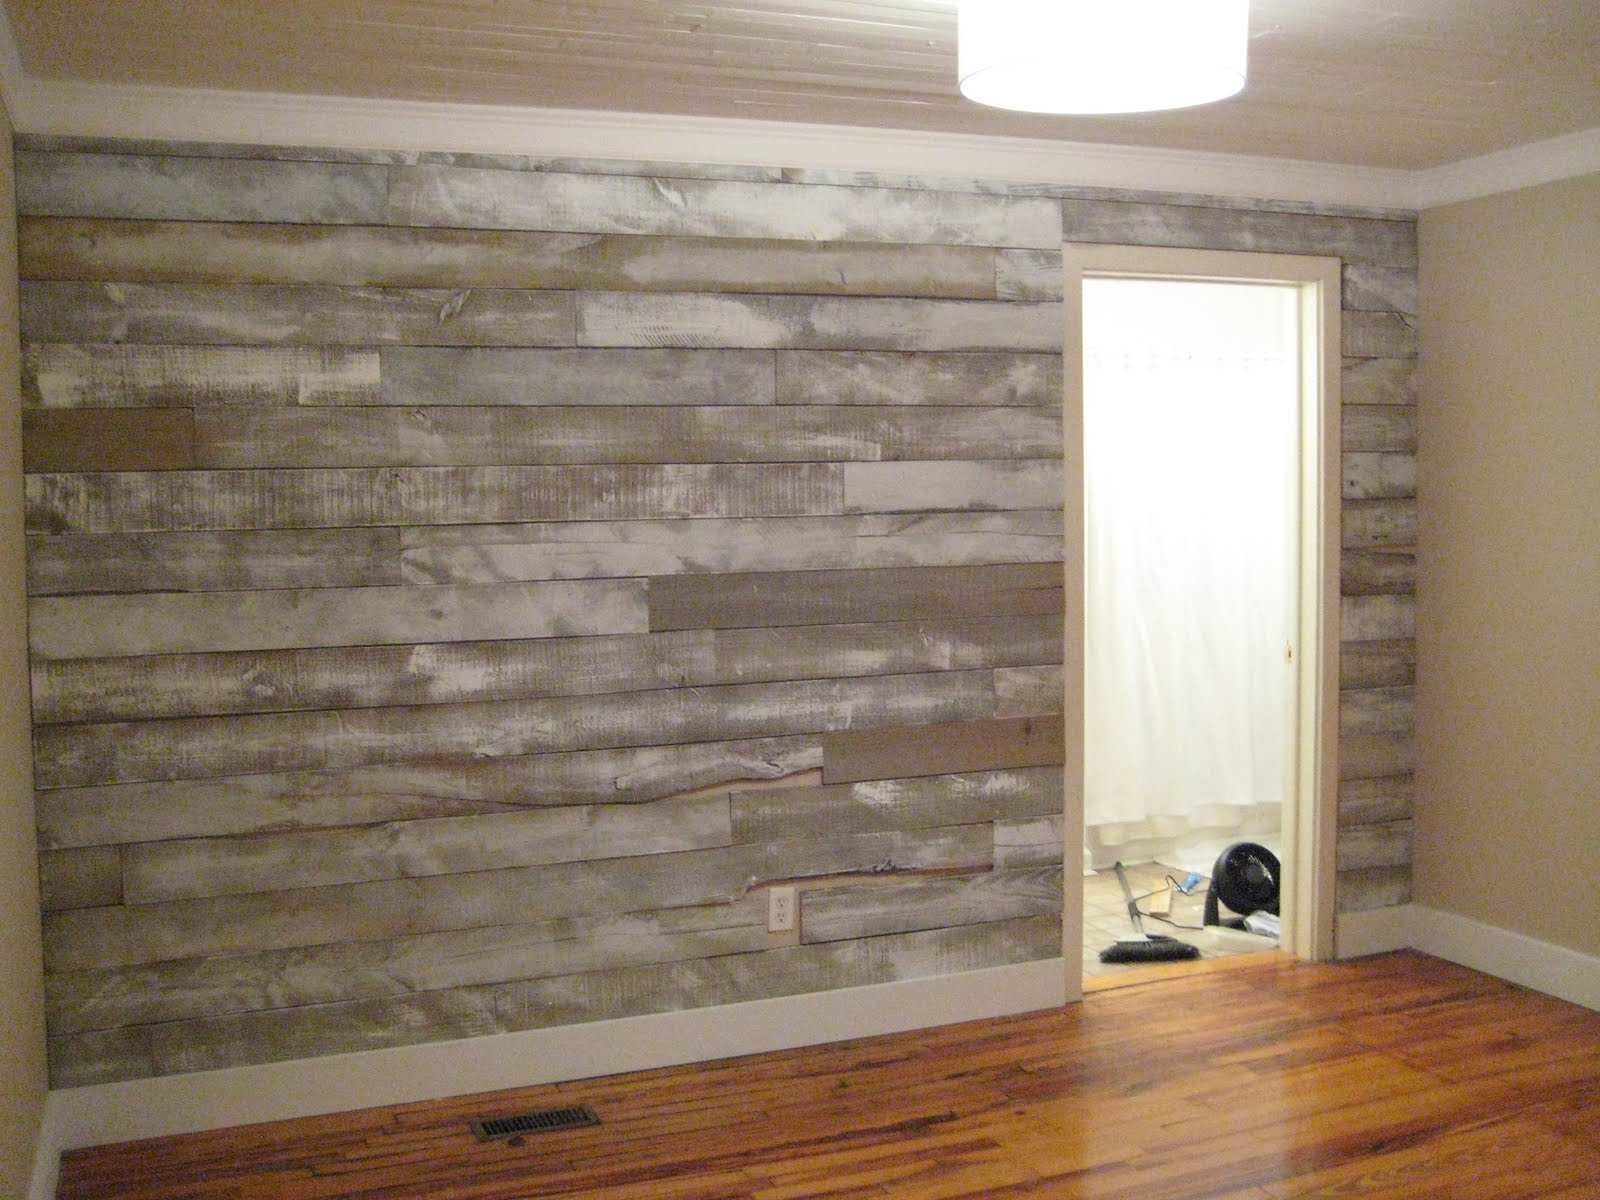 Wood wall covering ideas homesfeed for Allure cement siding